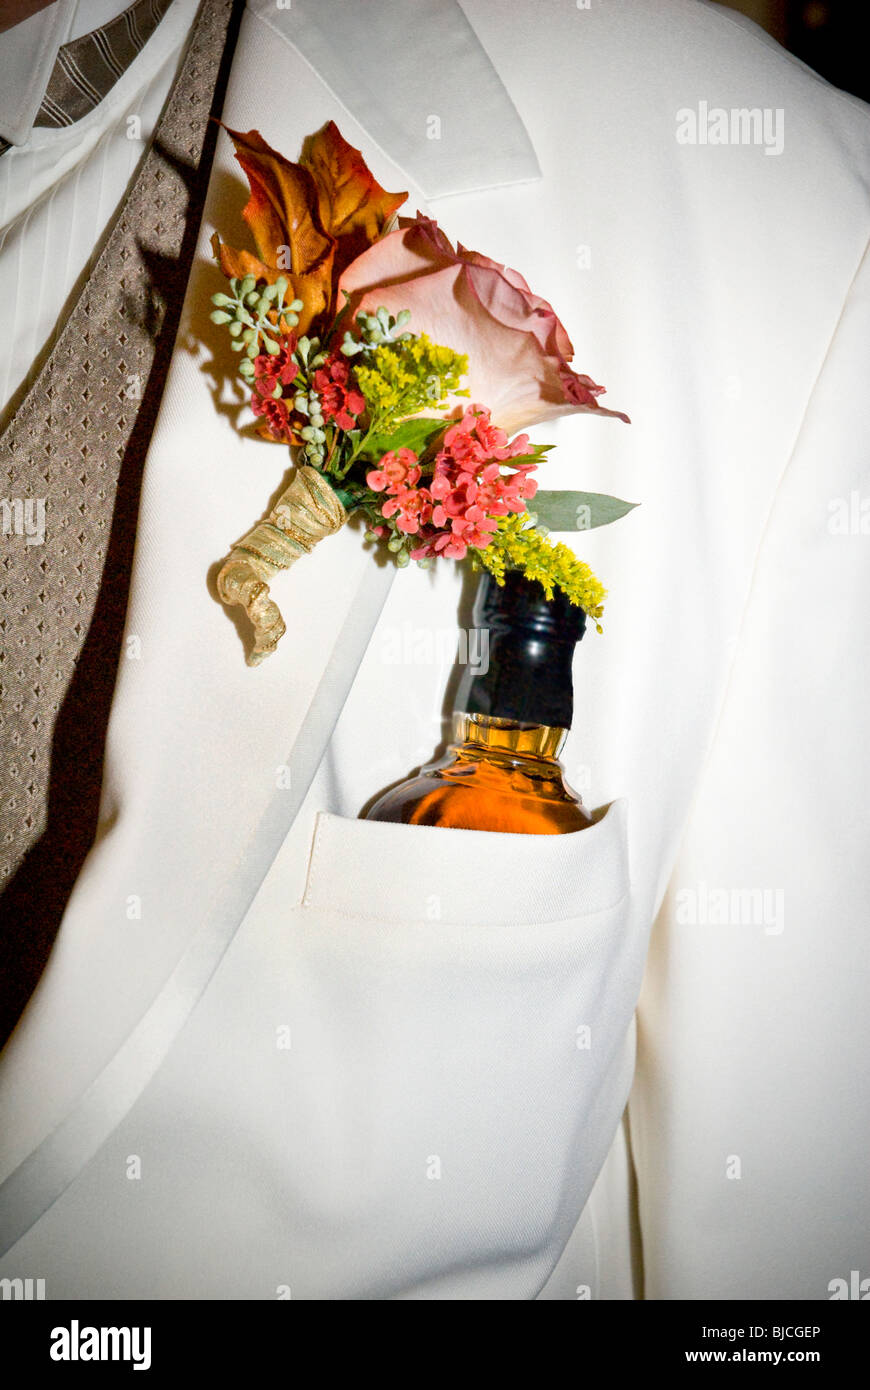 Bottle of liquor in grooms pocket just after a wedding - Stock Image